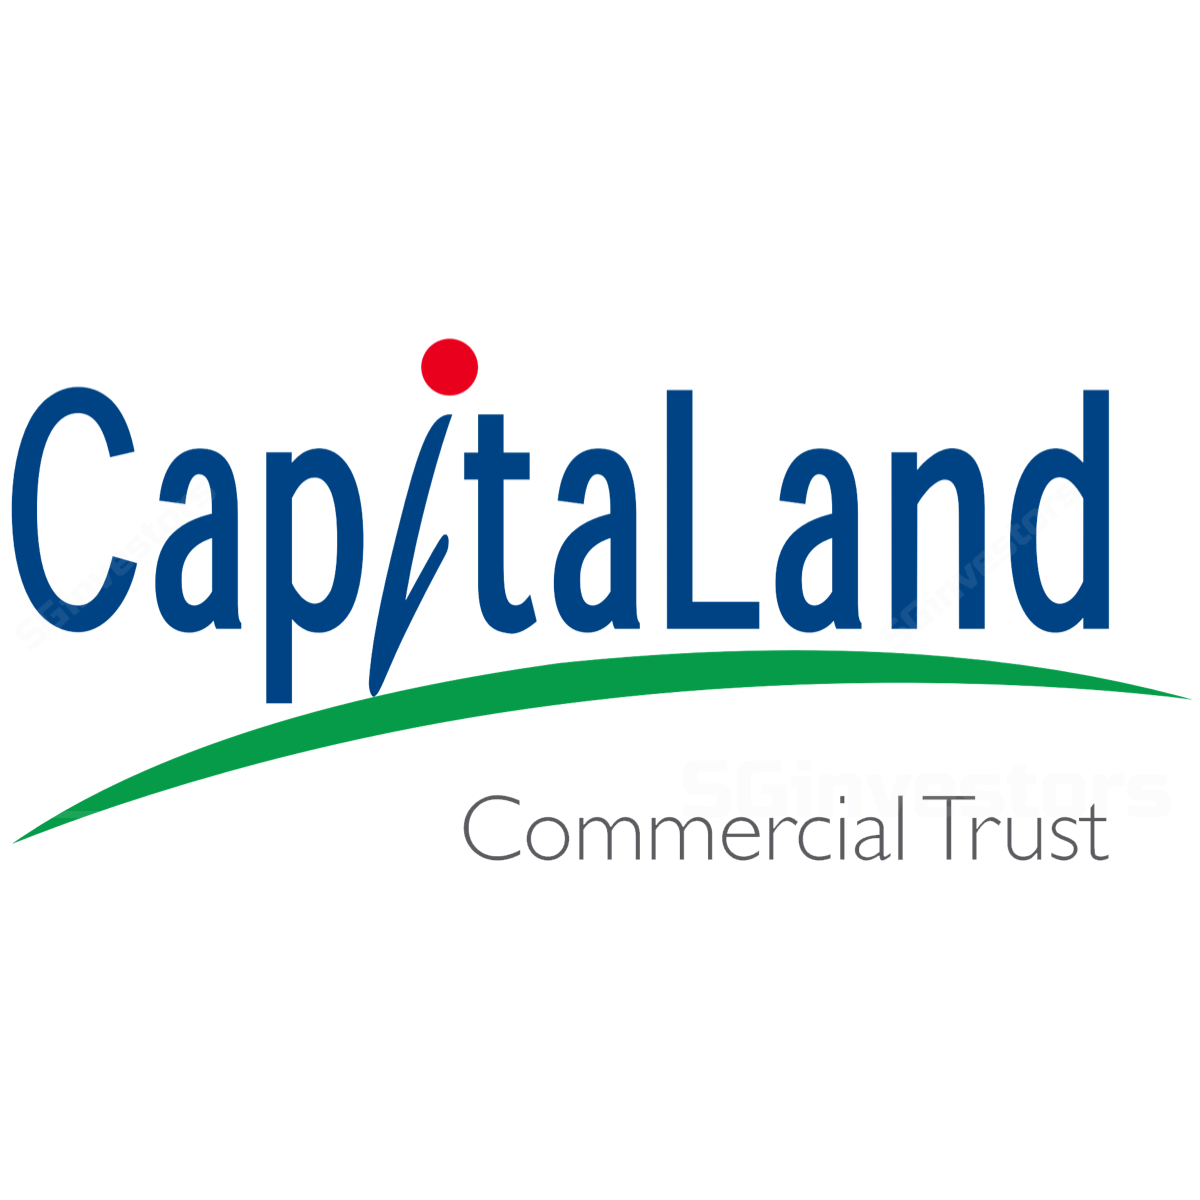 CapitaLand Commercial Trust - Maybank Kim Eng 2018-05-17: Maiden Overseas Foray